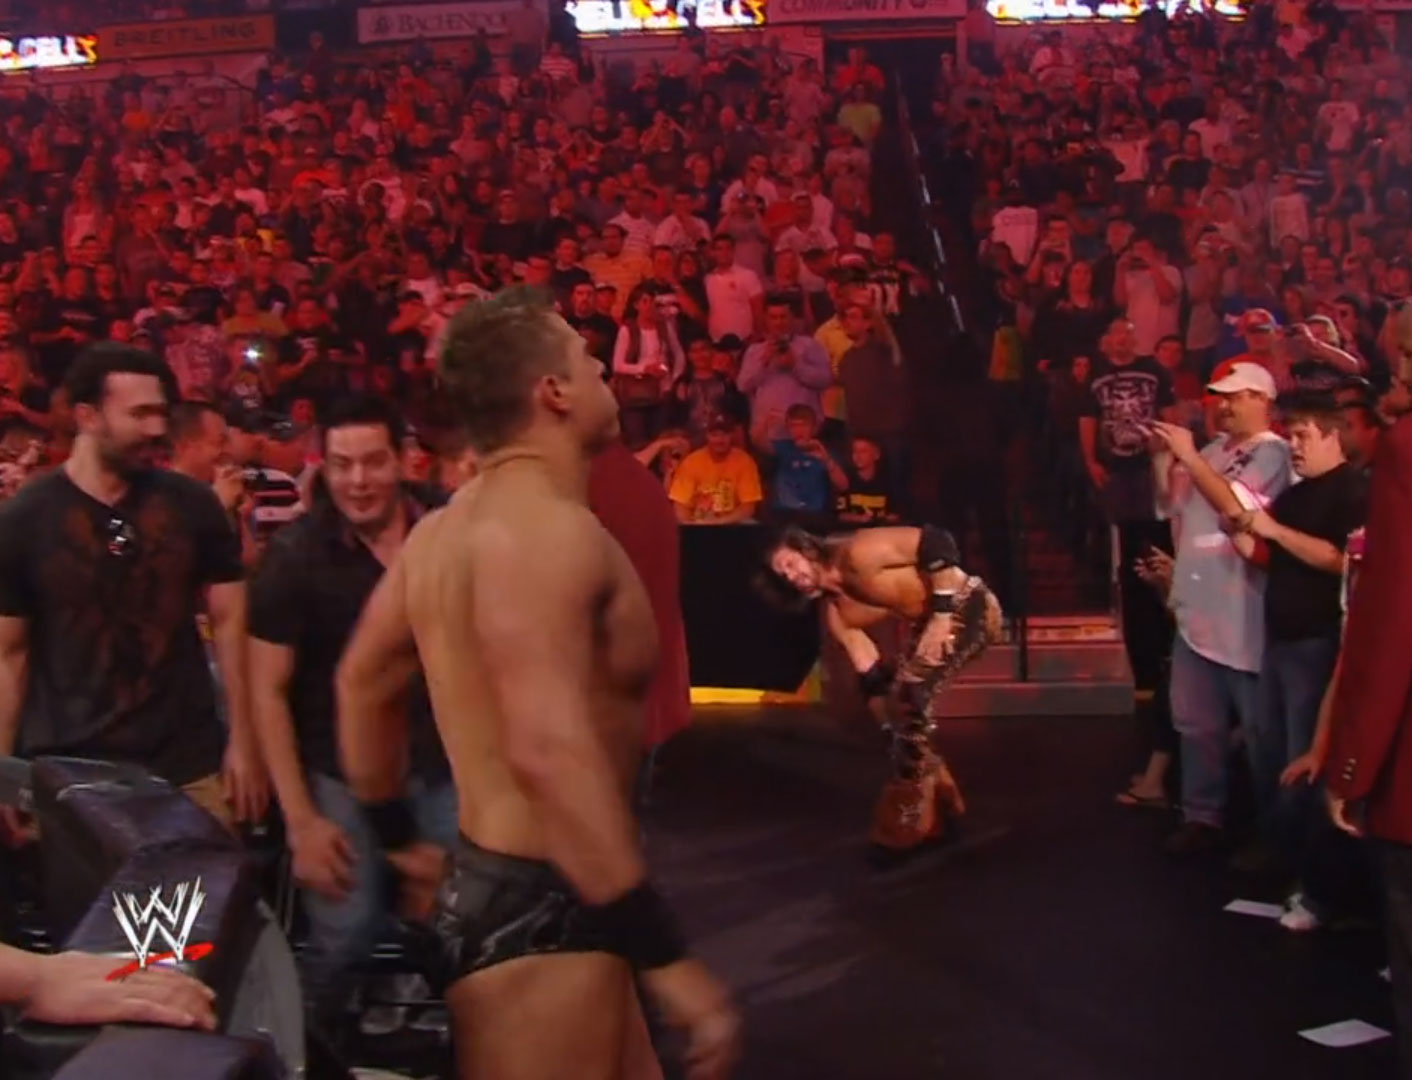 Daniel Bryan vs. John Morrison vs. The Miz  Triple-Threat Submissions Count Anywhere, WWE United States Championship WWE Hell in a Cell '10 Oct 3rd 2010